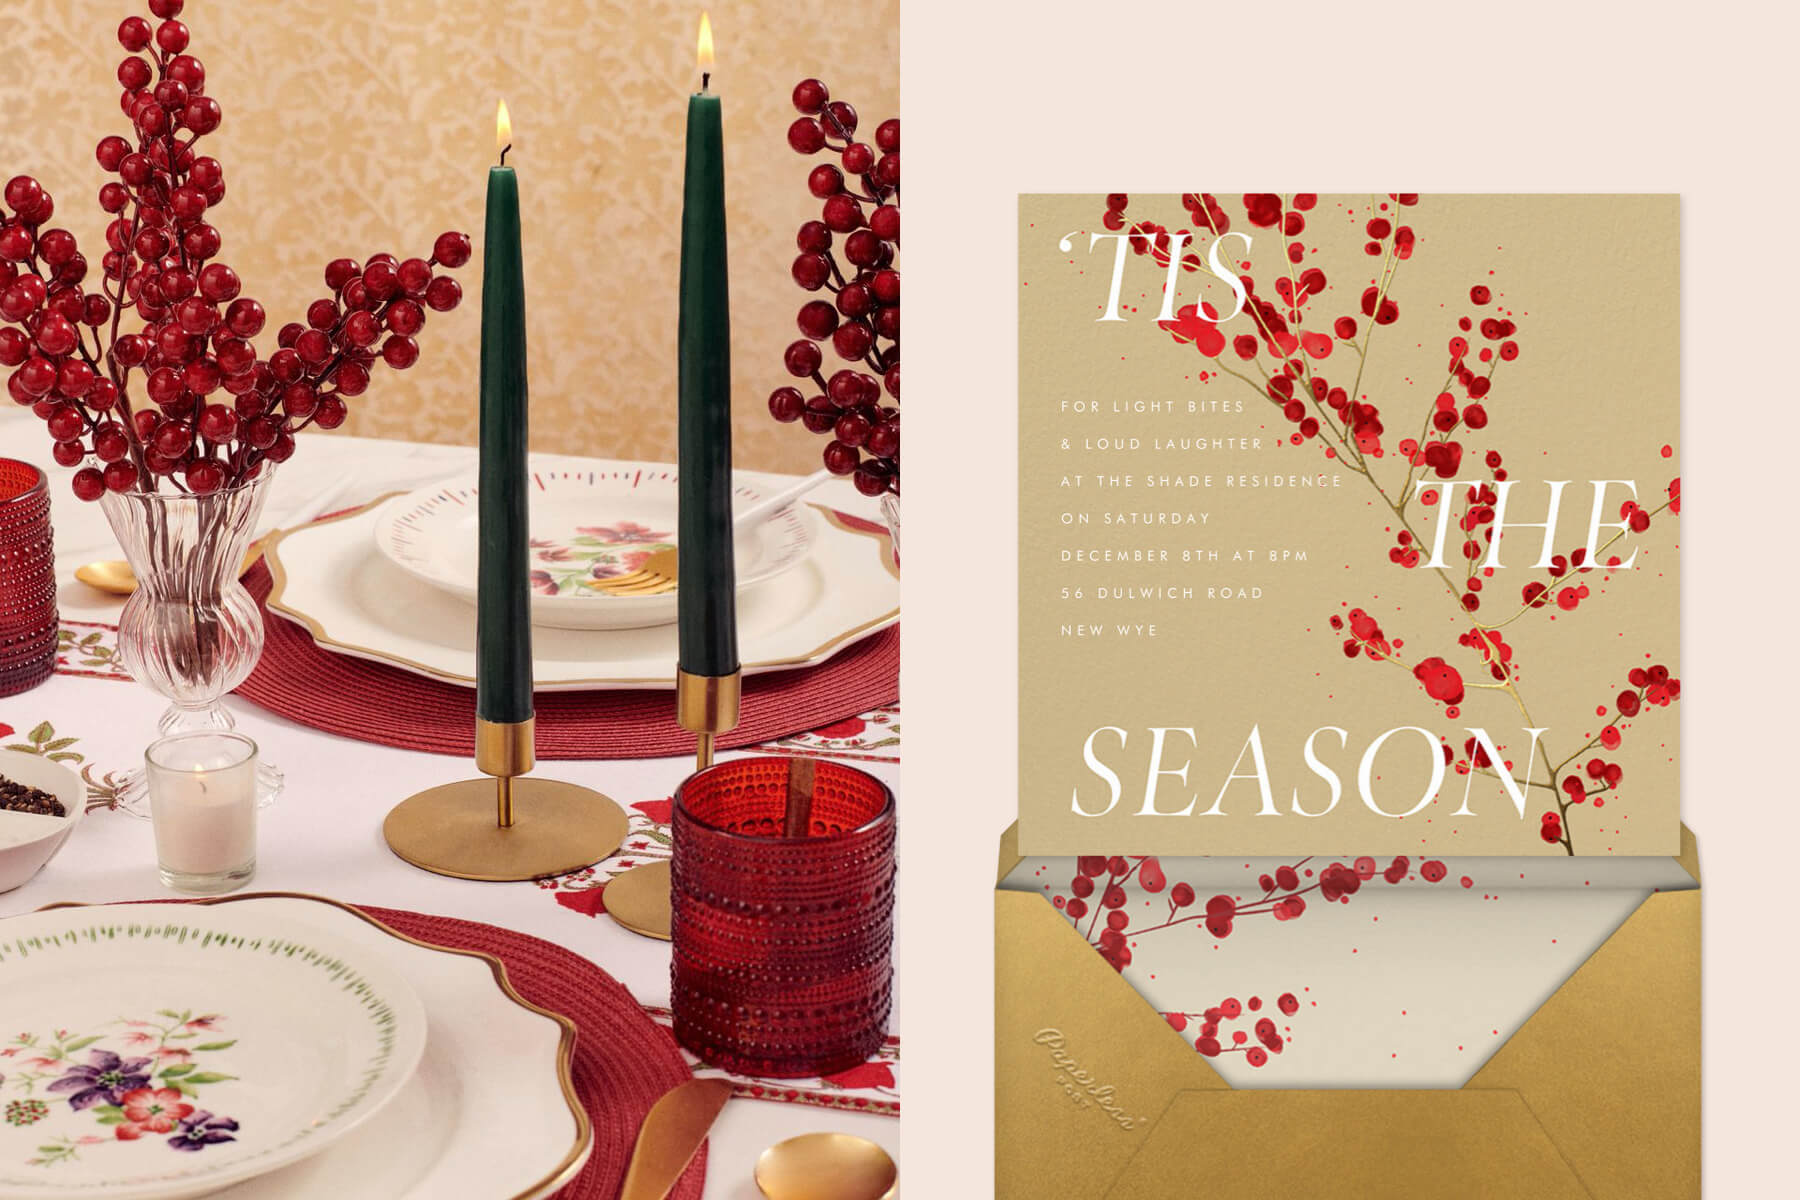 Berry Scandi table from Social Studies paired with winter berry invitation from Paperless Post